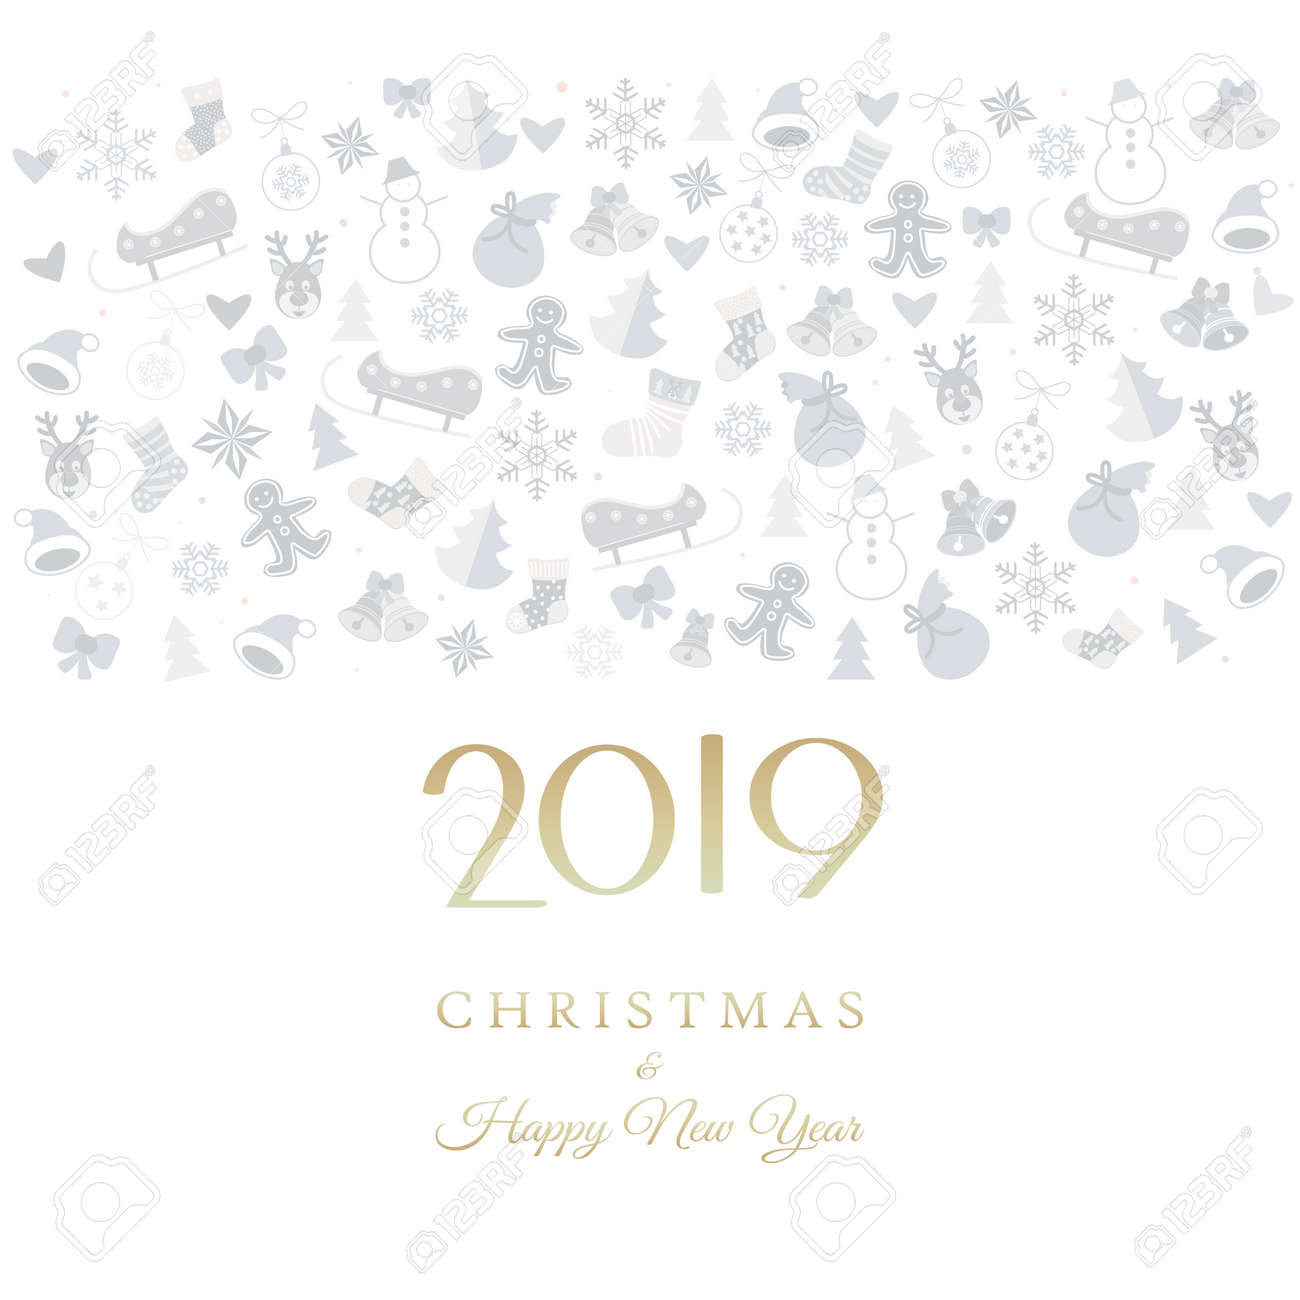 2019 new year festival event invitation christmas icons stock vector 104430409